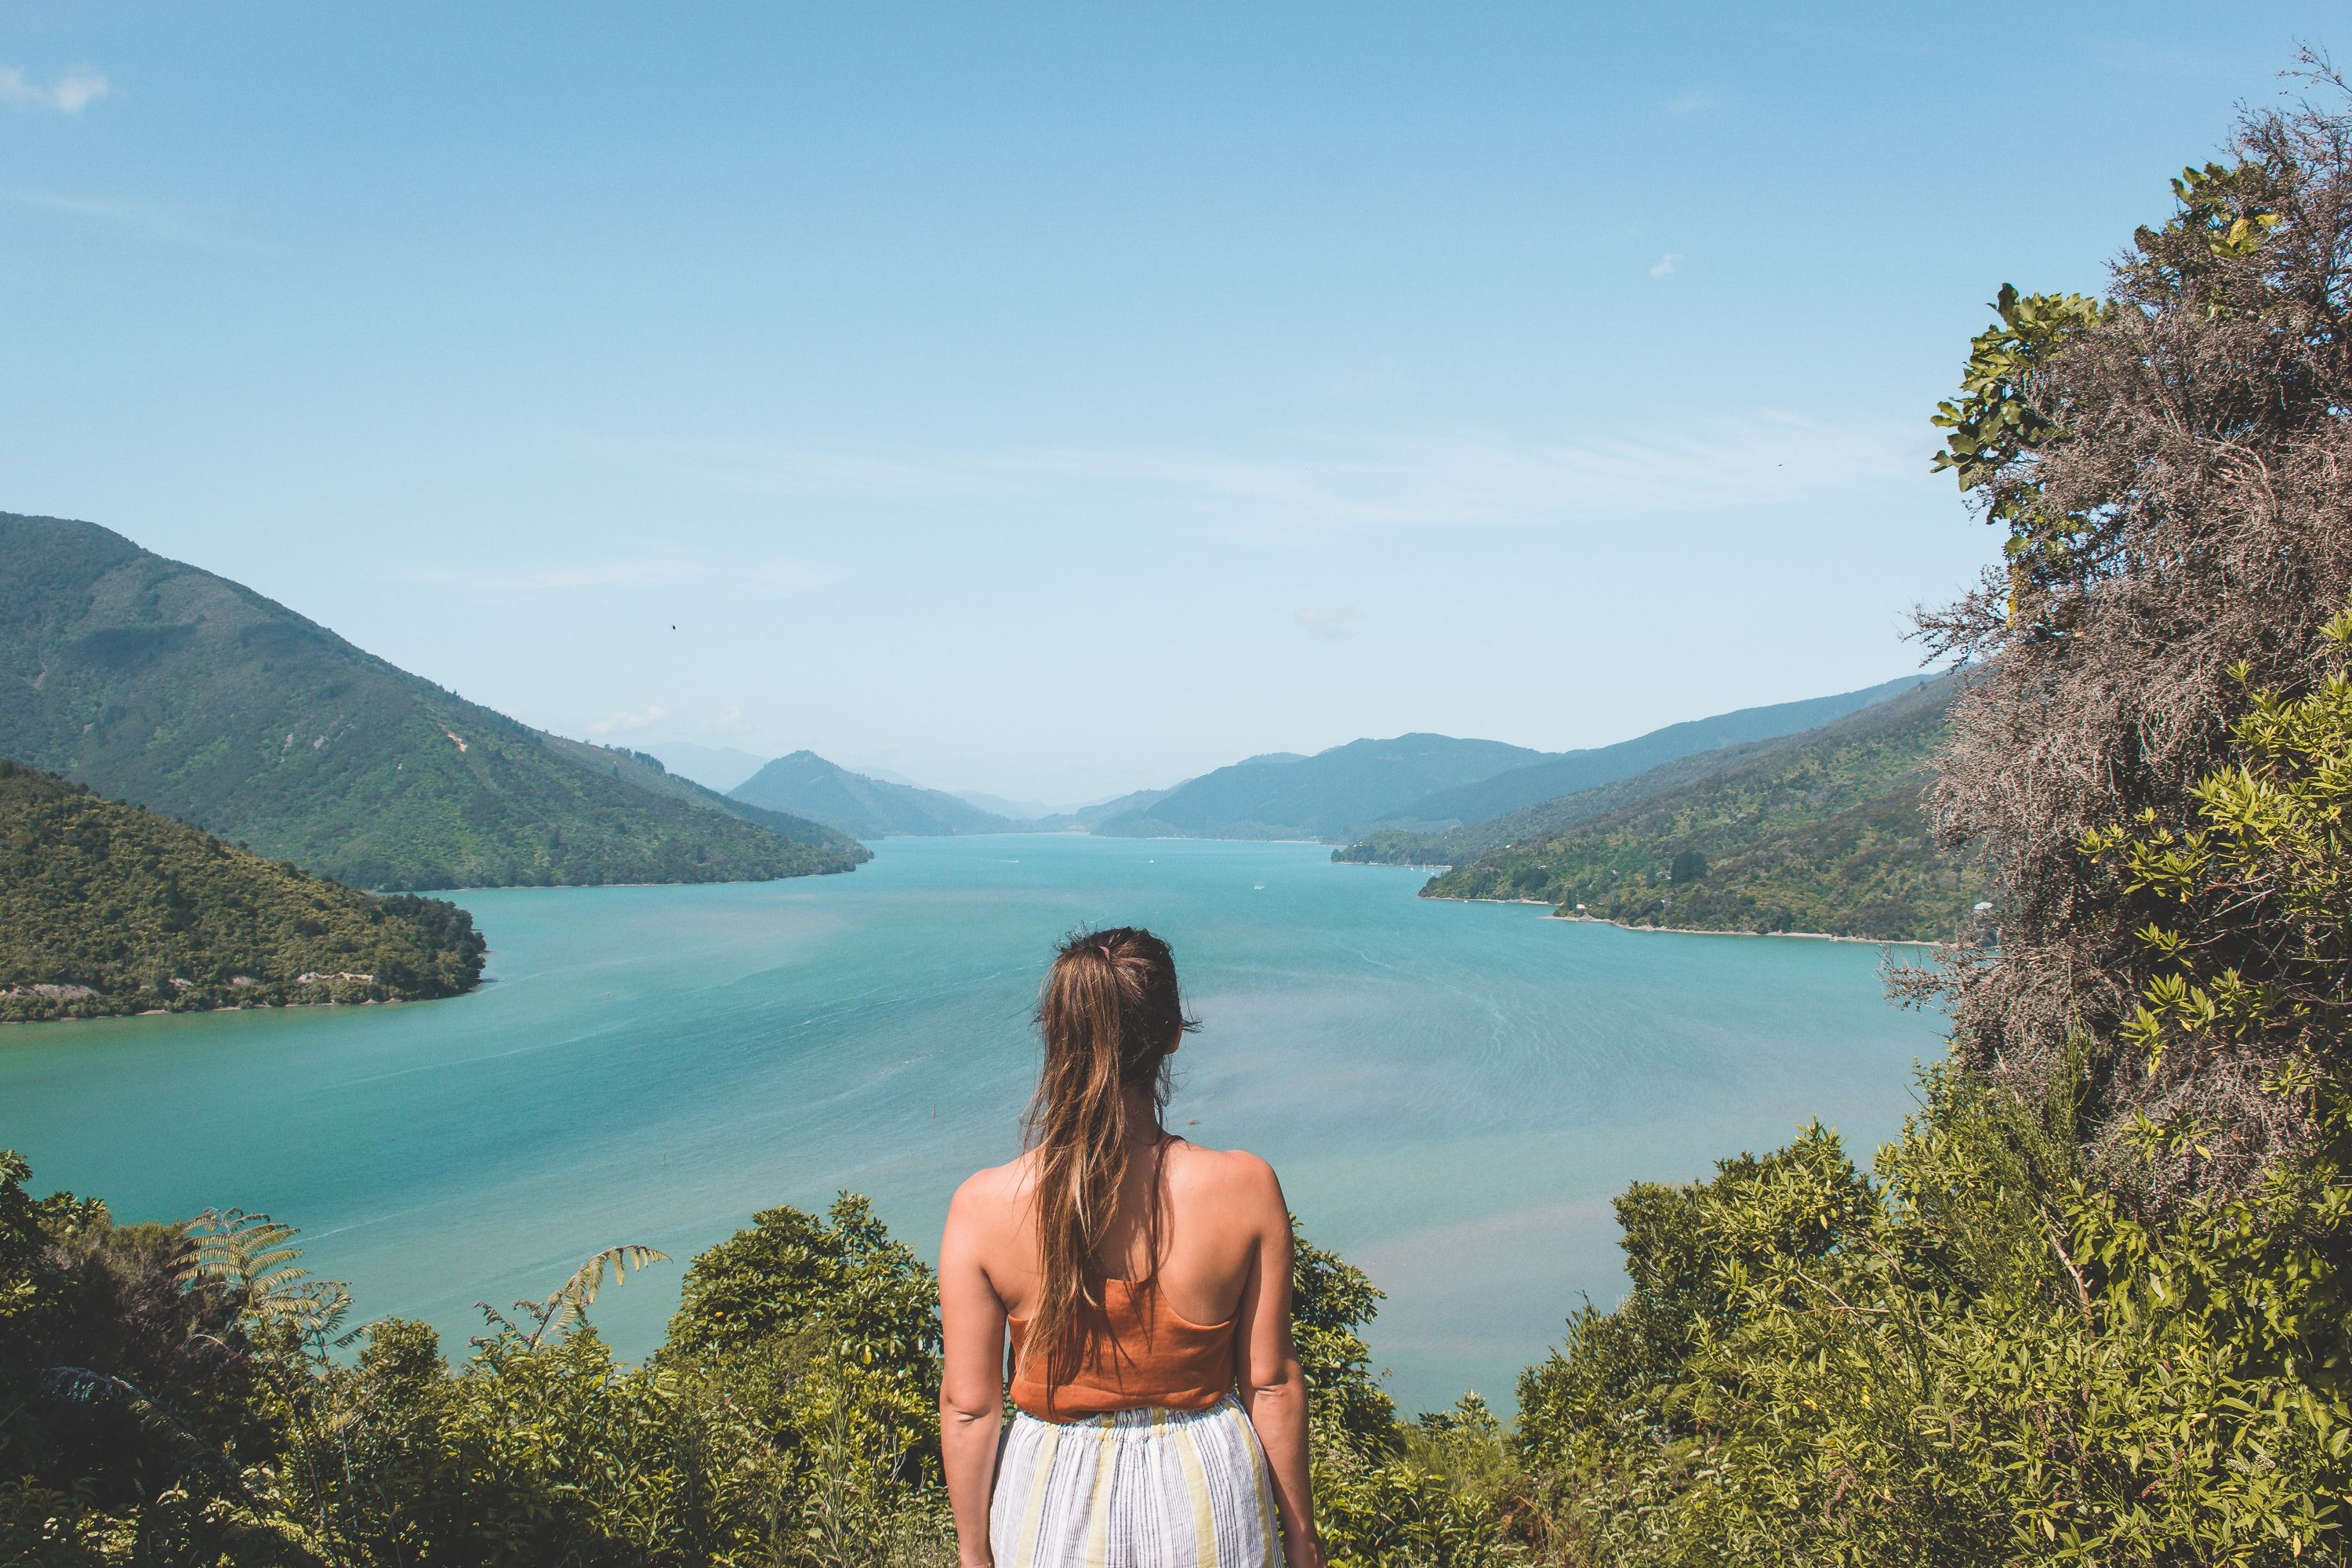 woman looking at body of water during daytime